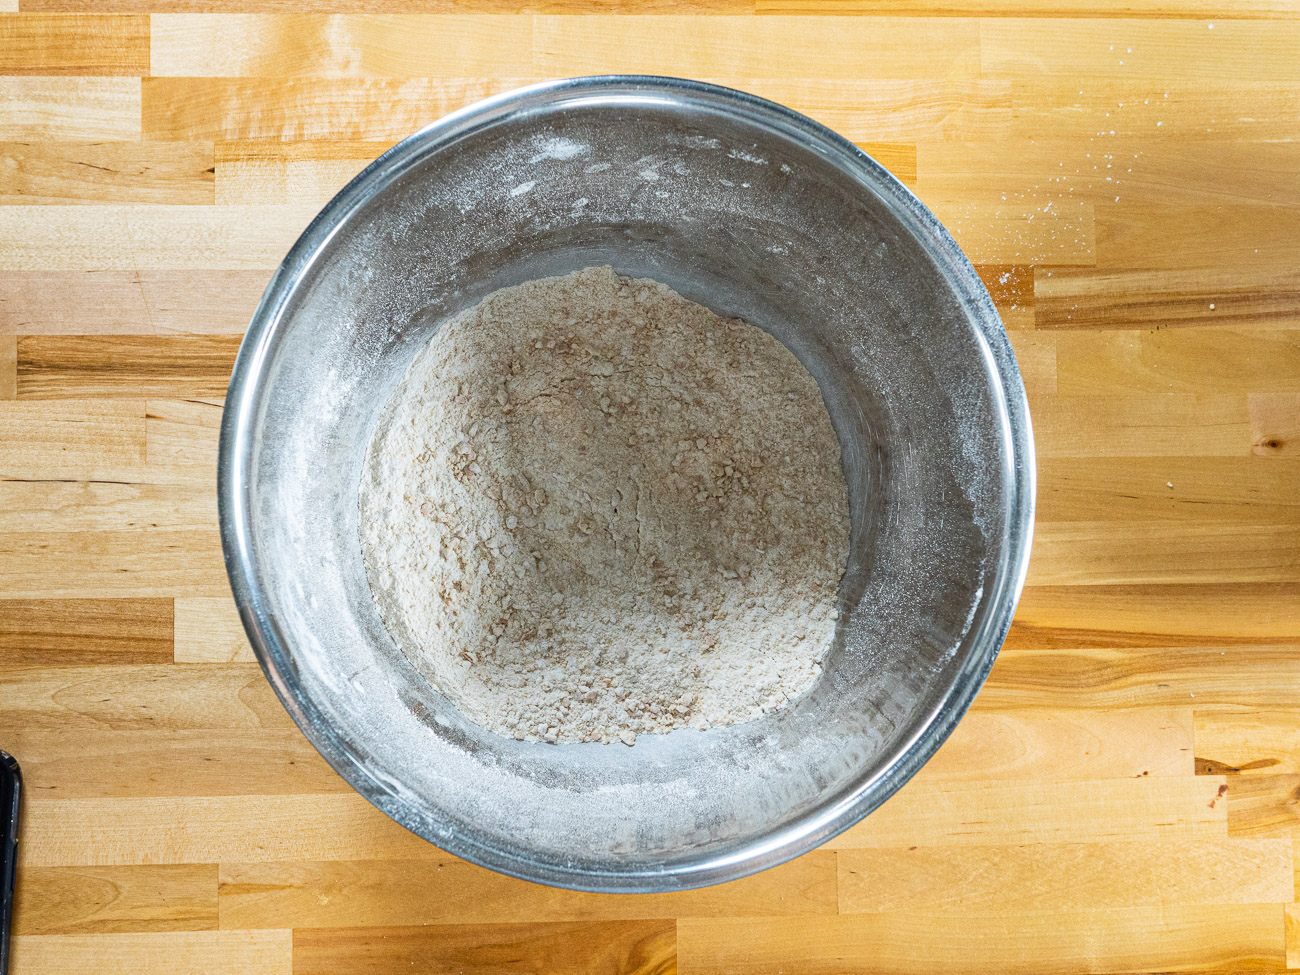 In a separate bowl, combine flour, 1 cup graham cracker crumbs, salt, and baking soda.